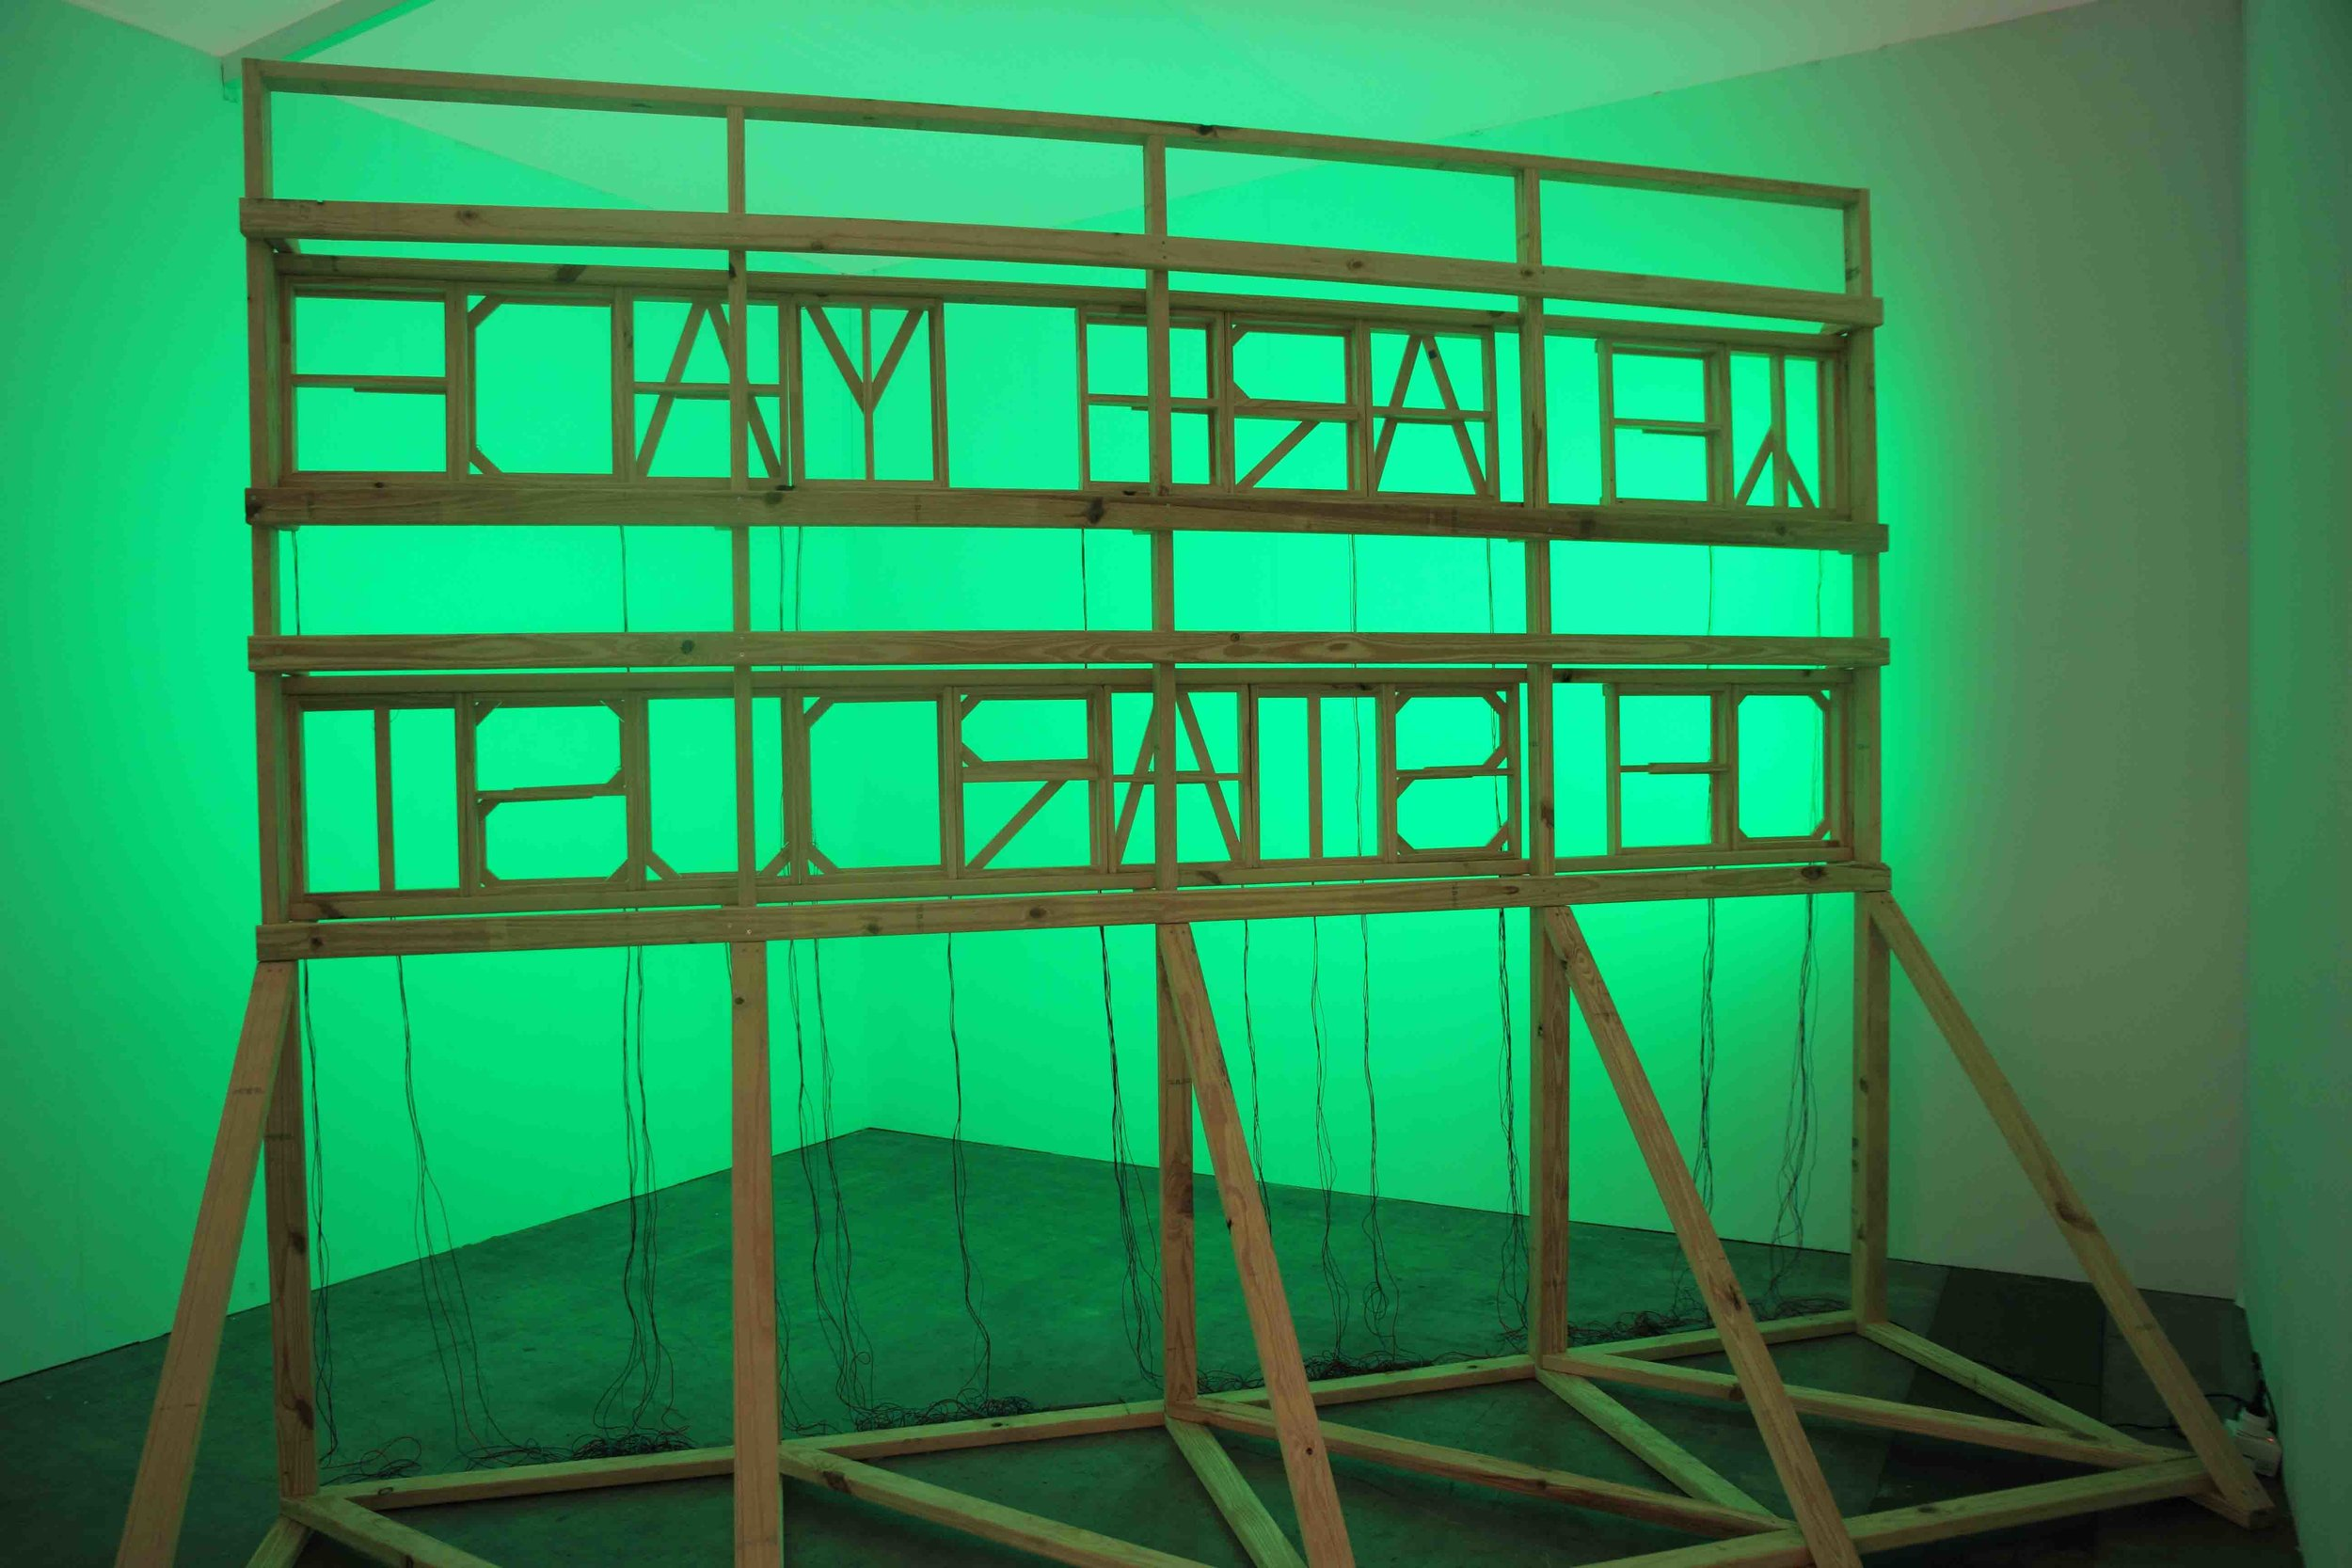 Michaela Gleave,  We Are Made of Stardust , 2011-2012, pine structure, LEDs, RGB controller, 2.30 min colour loop, 400 x 120 x 300cm